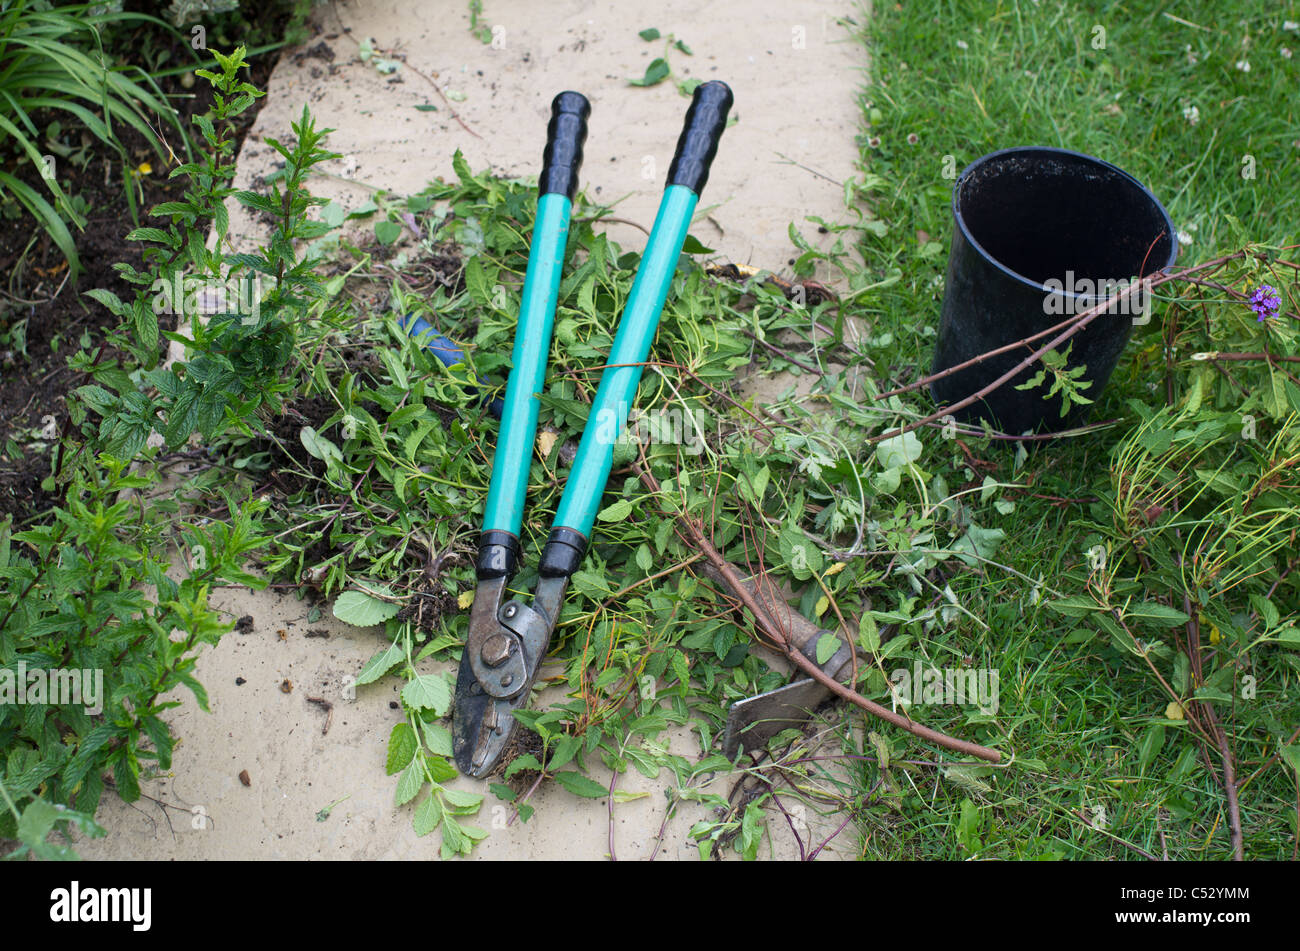 garden clippers croppers and clippings - Stock Image